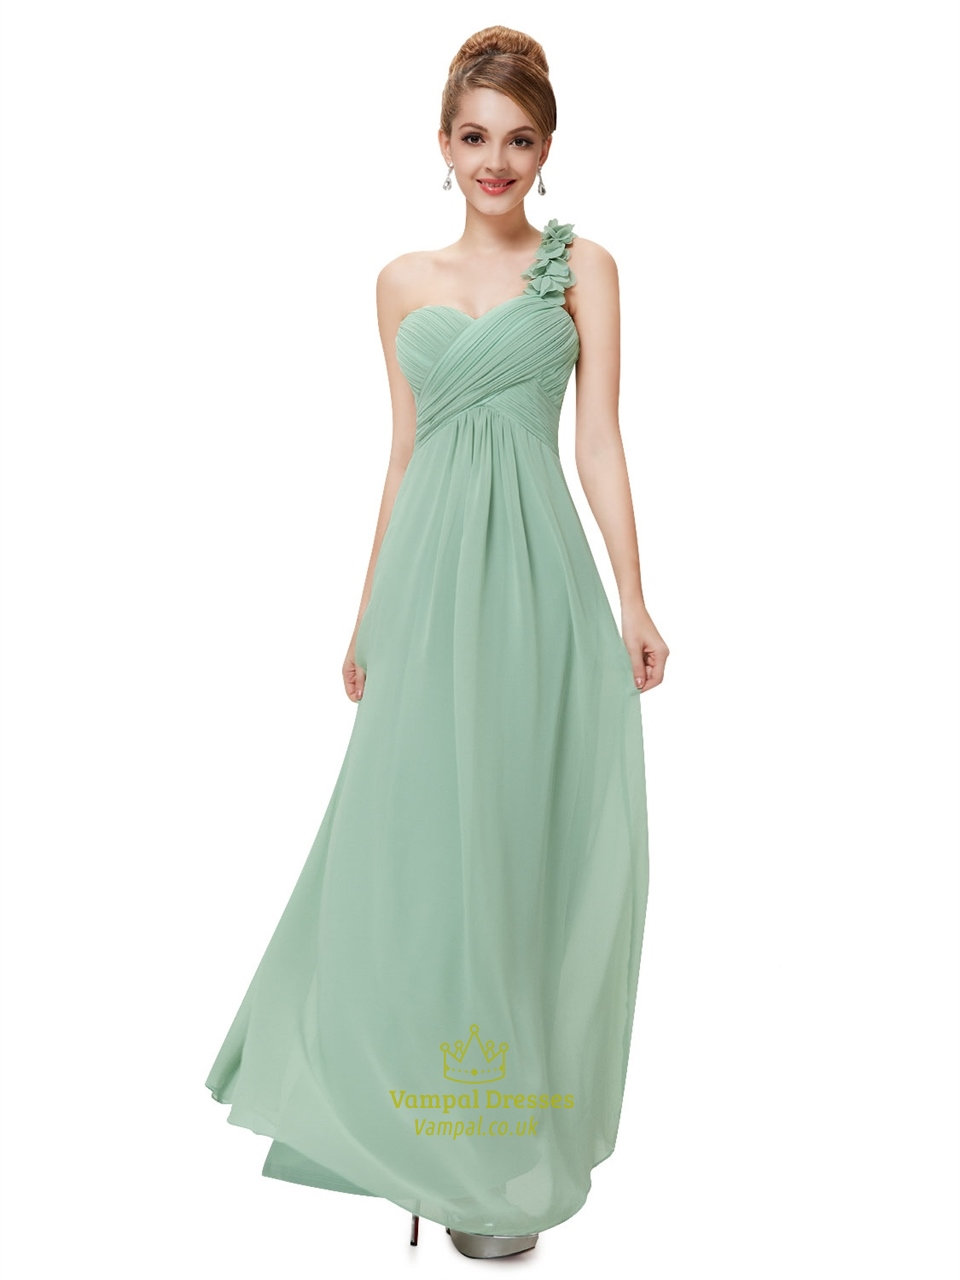 State Color Sage Green One Shoulder Chiffon Bridesmaid Dresses Shoulder Sage Bridesmaid Dresses Sage Bridesmaid Dresses Length wedding dress Sage Bridesmaid Dresses